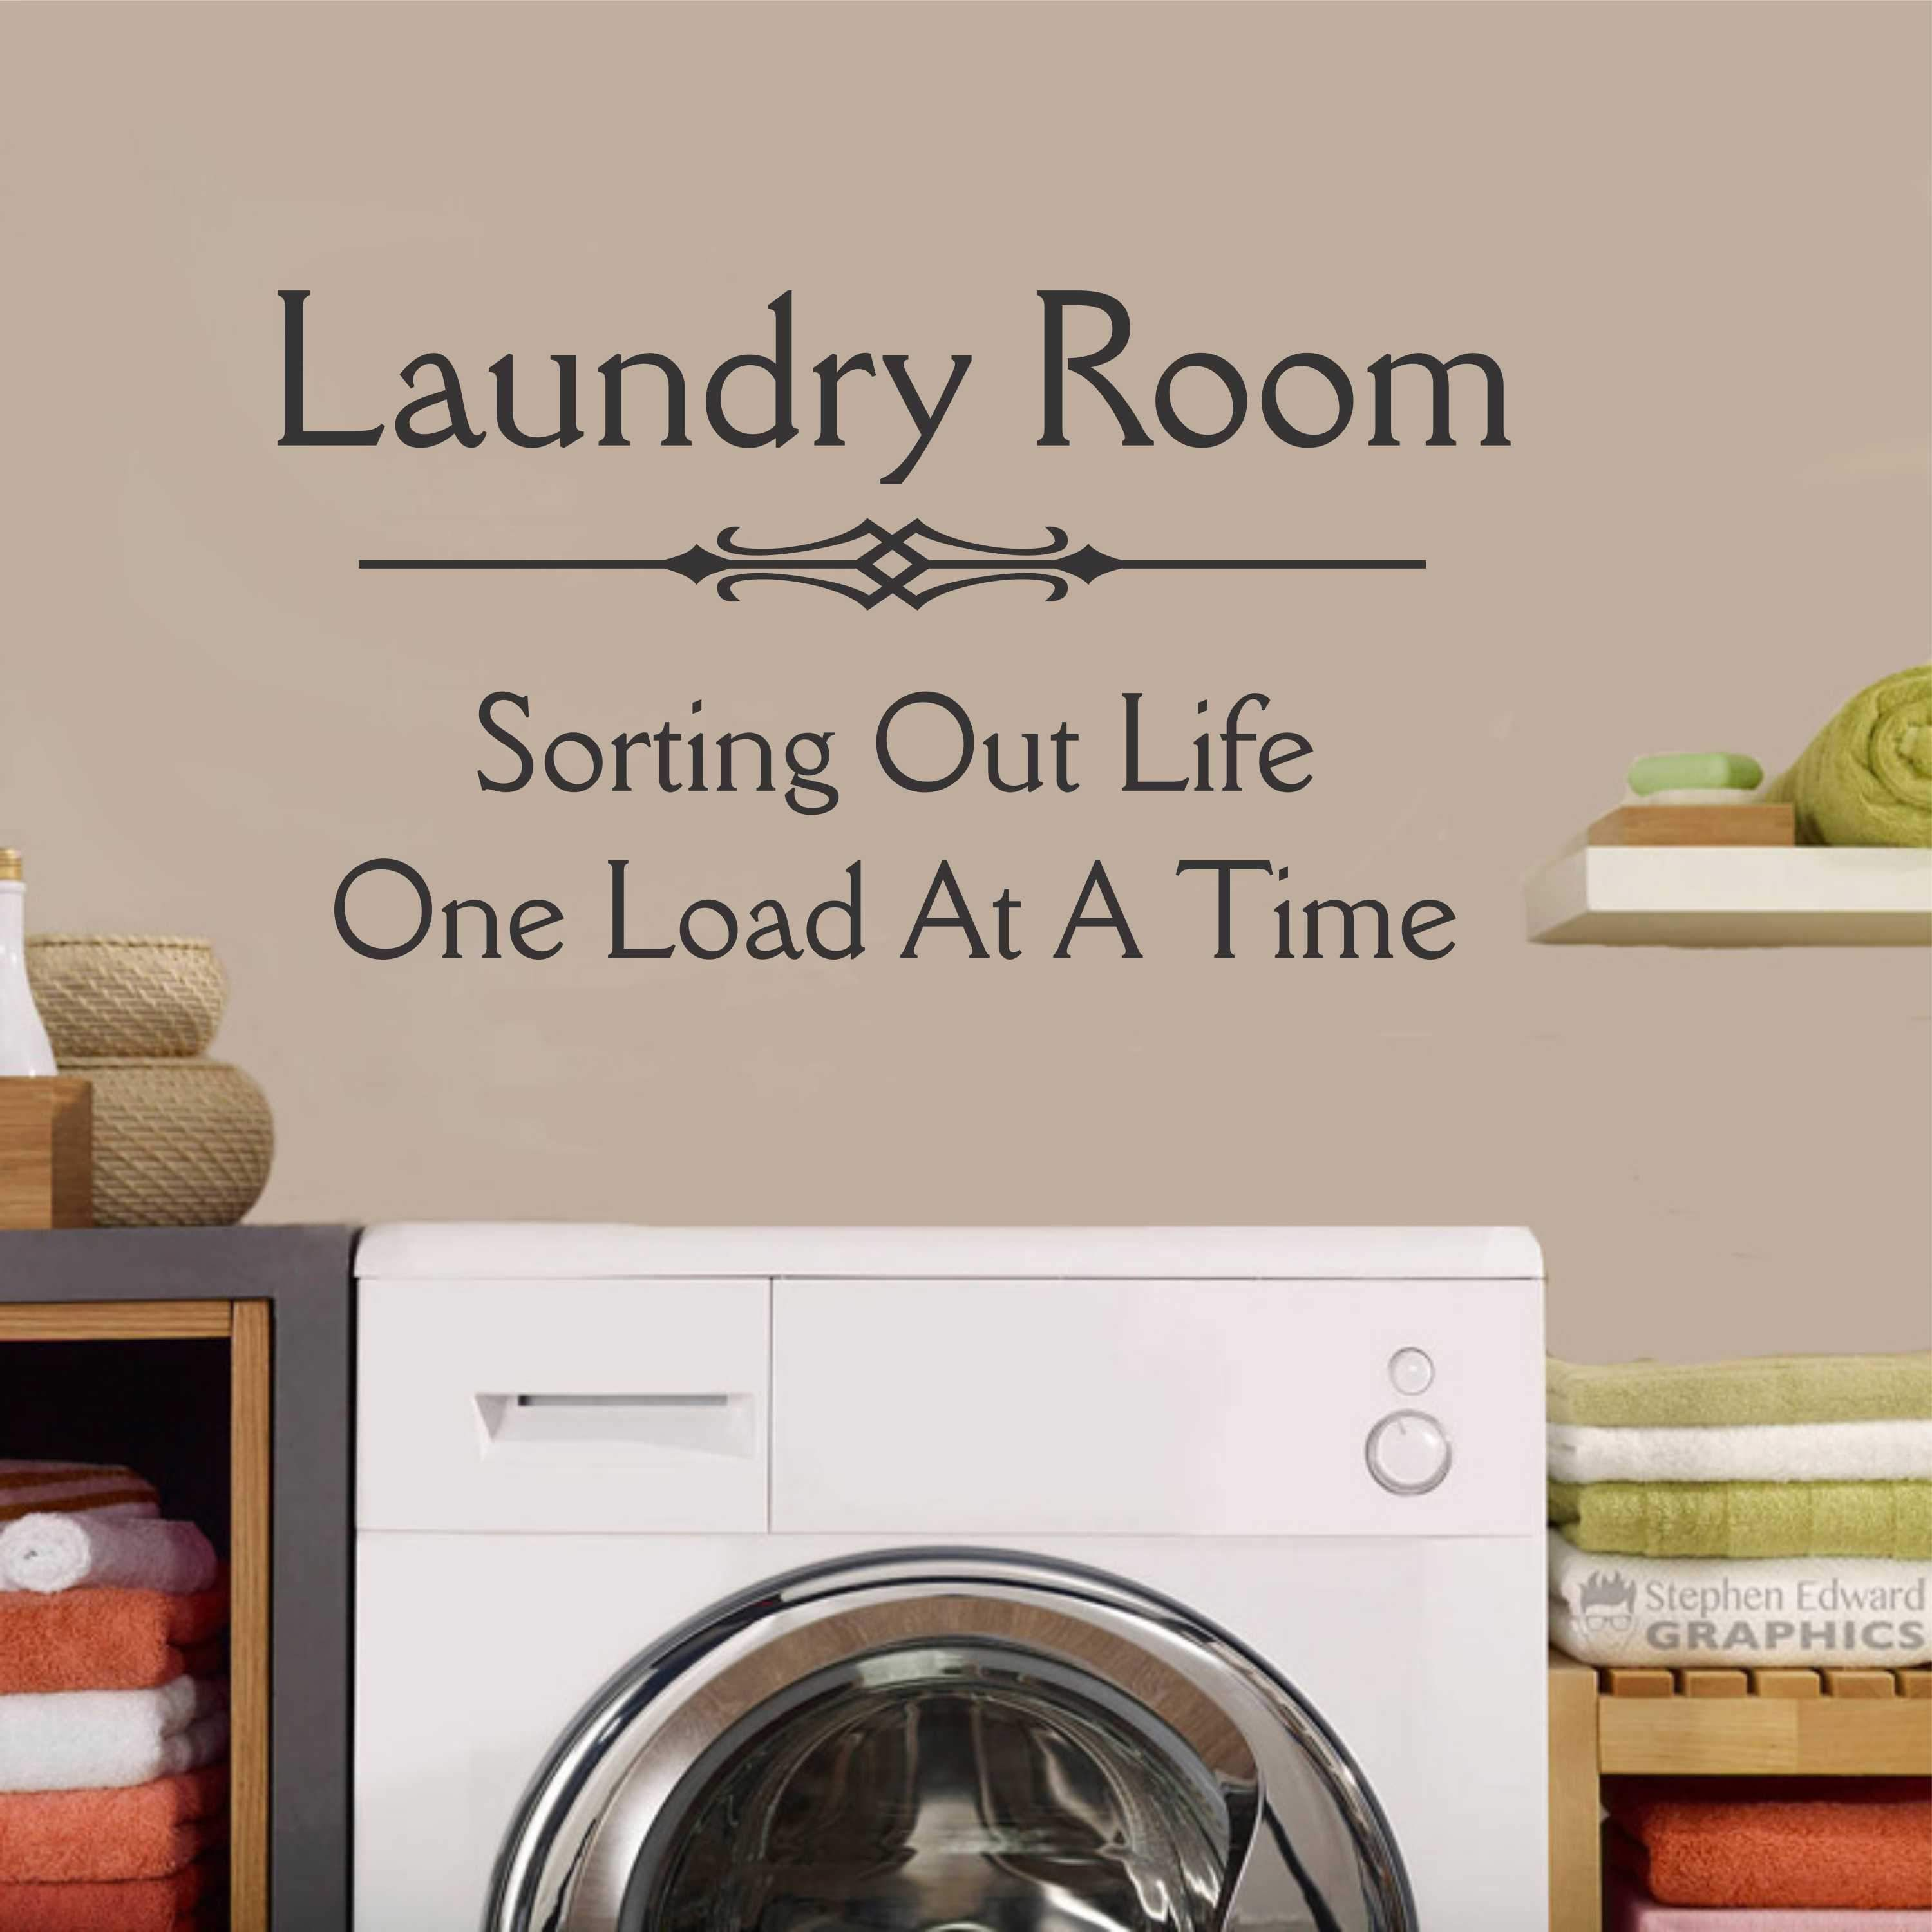 Laundry Room Vinyl Wall Quotes Laundry Sorting Life Decal  Vinyl Lettering  Wall Quotes  Products